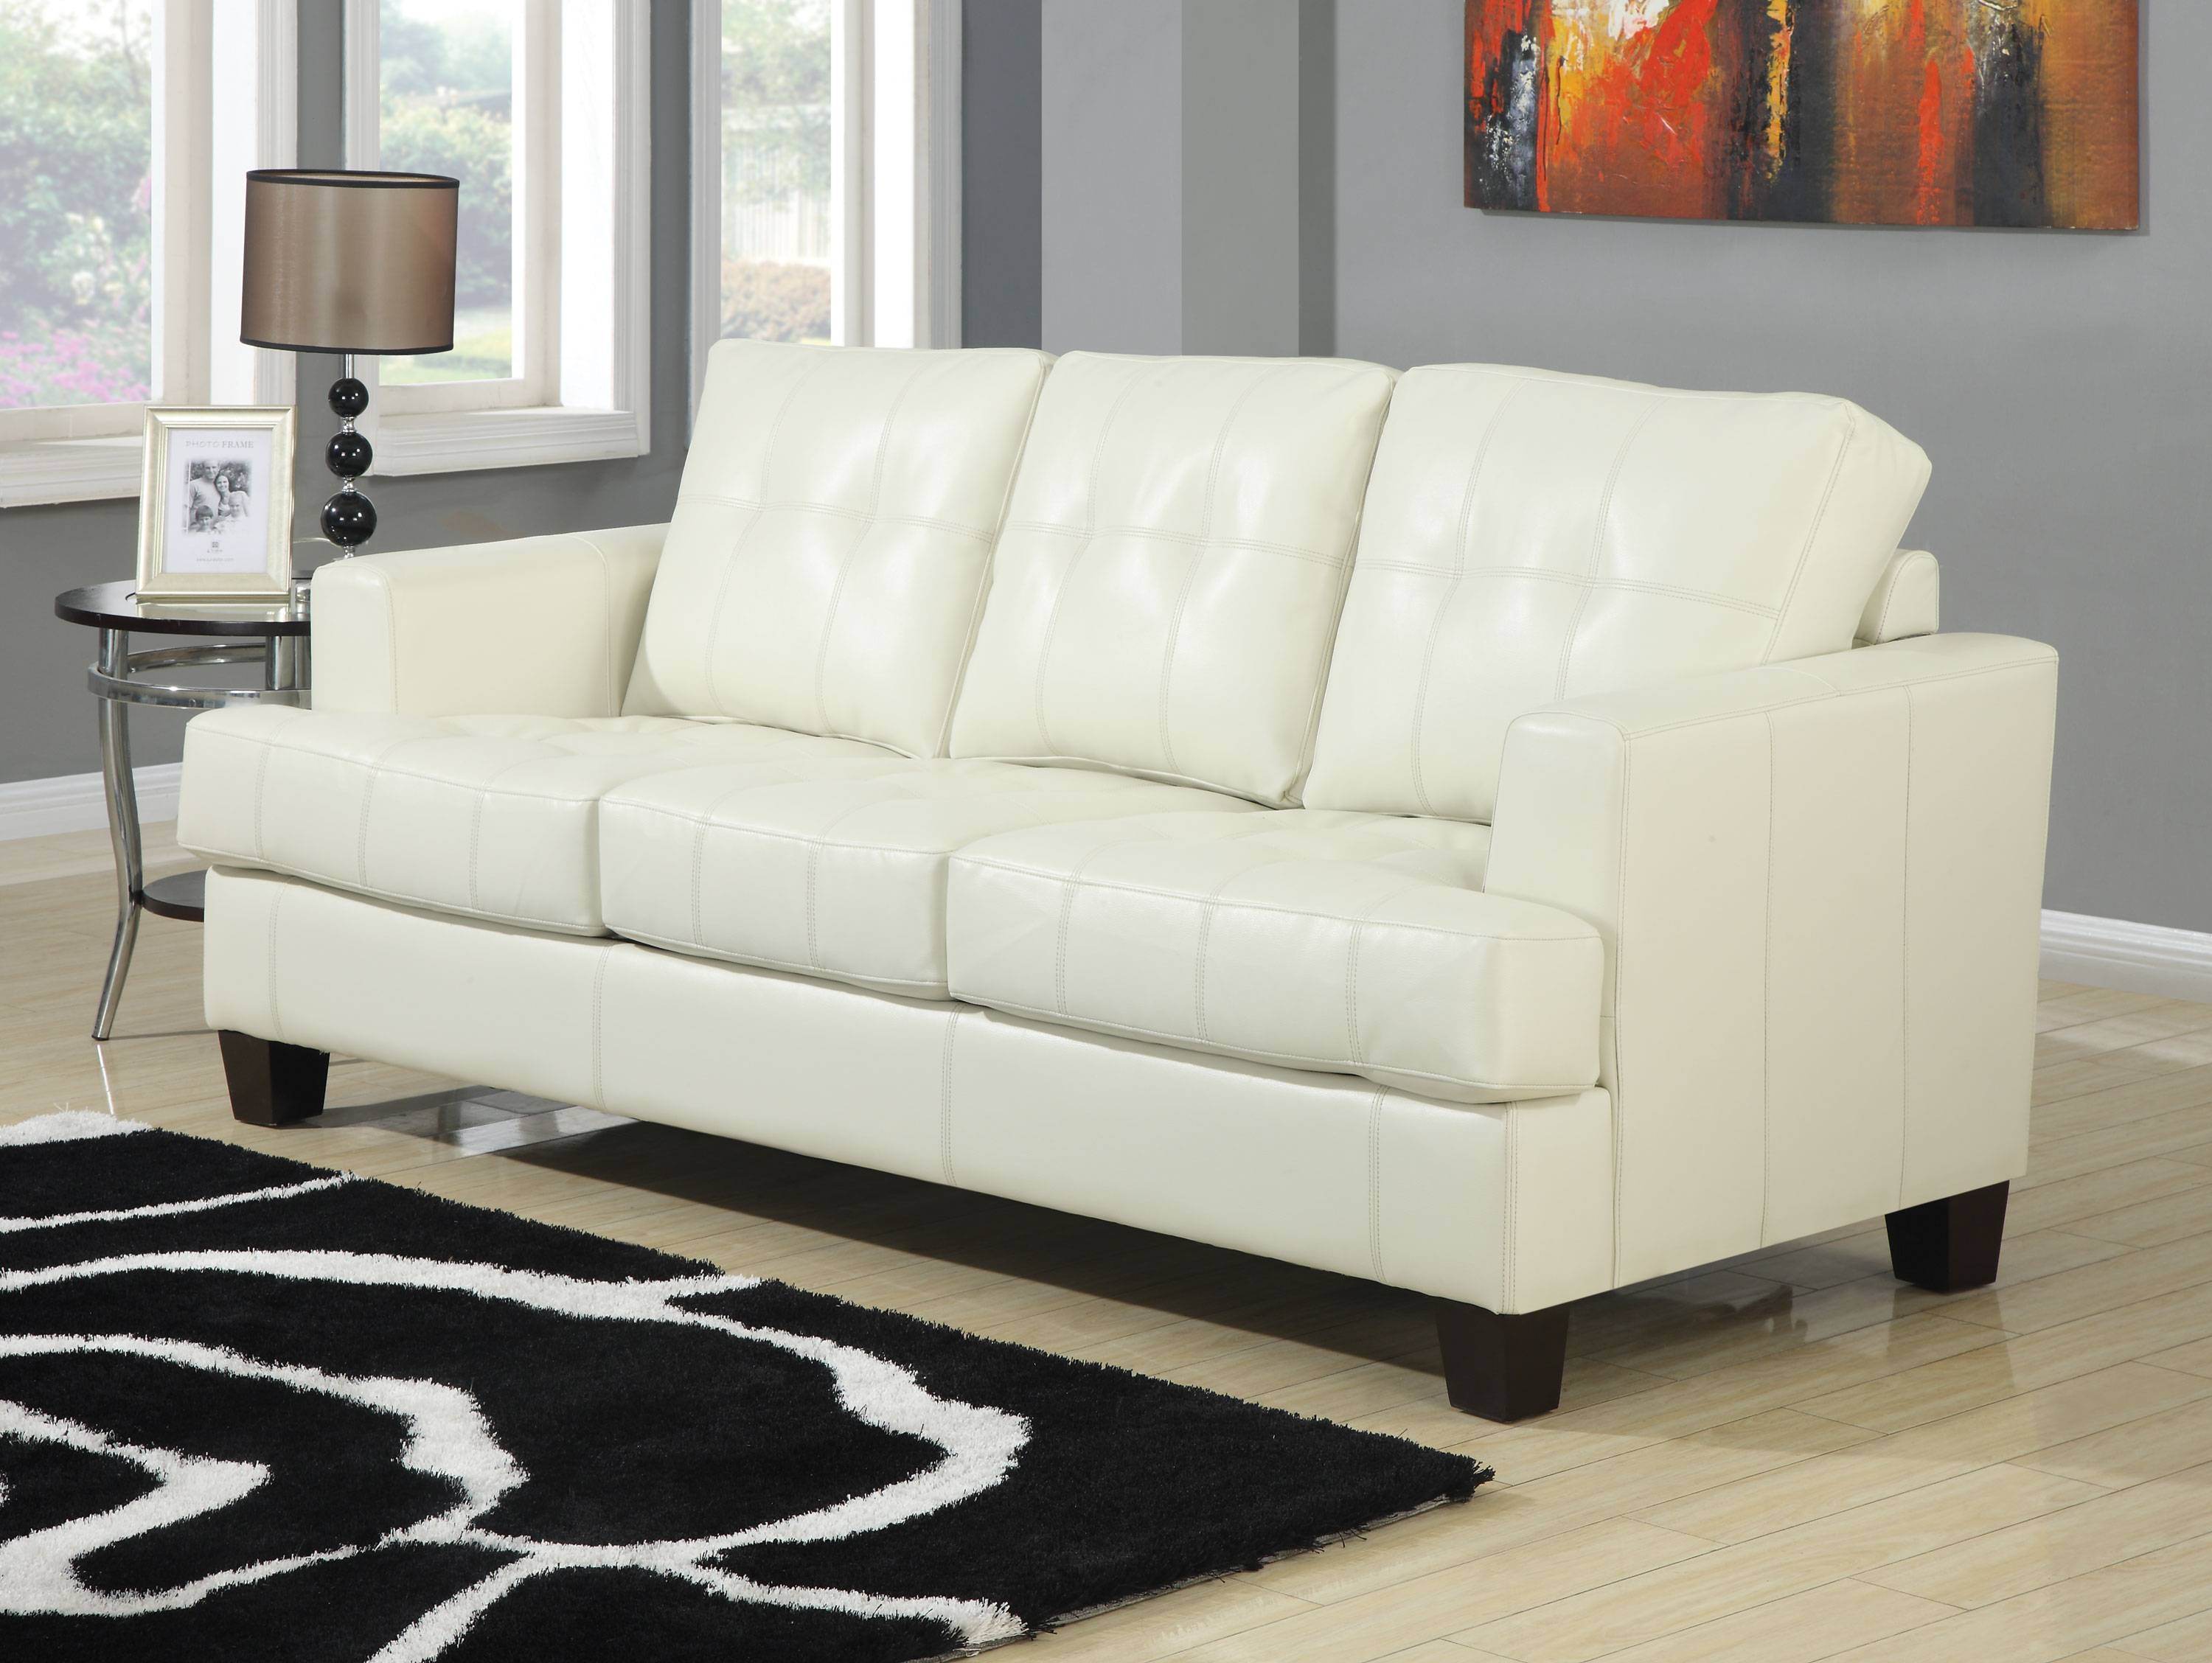 Sofas Center : Colored Leather Sofas And Loveseats Or Sectionals within Cream Colored Sofa (Image 16 of 25)